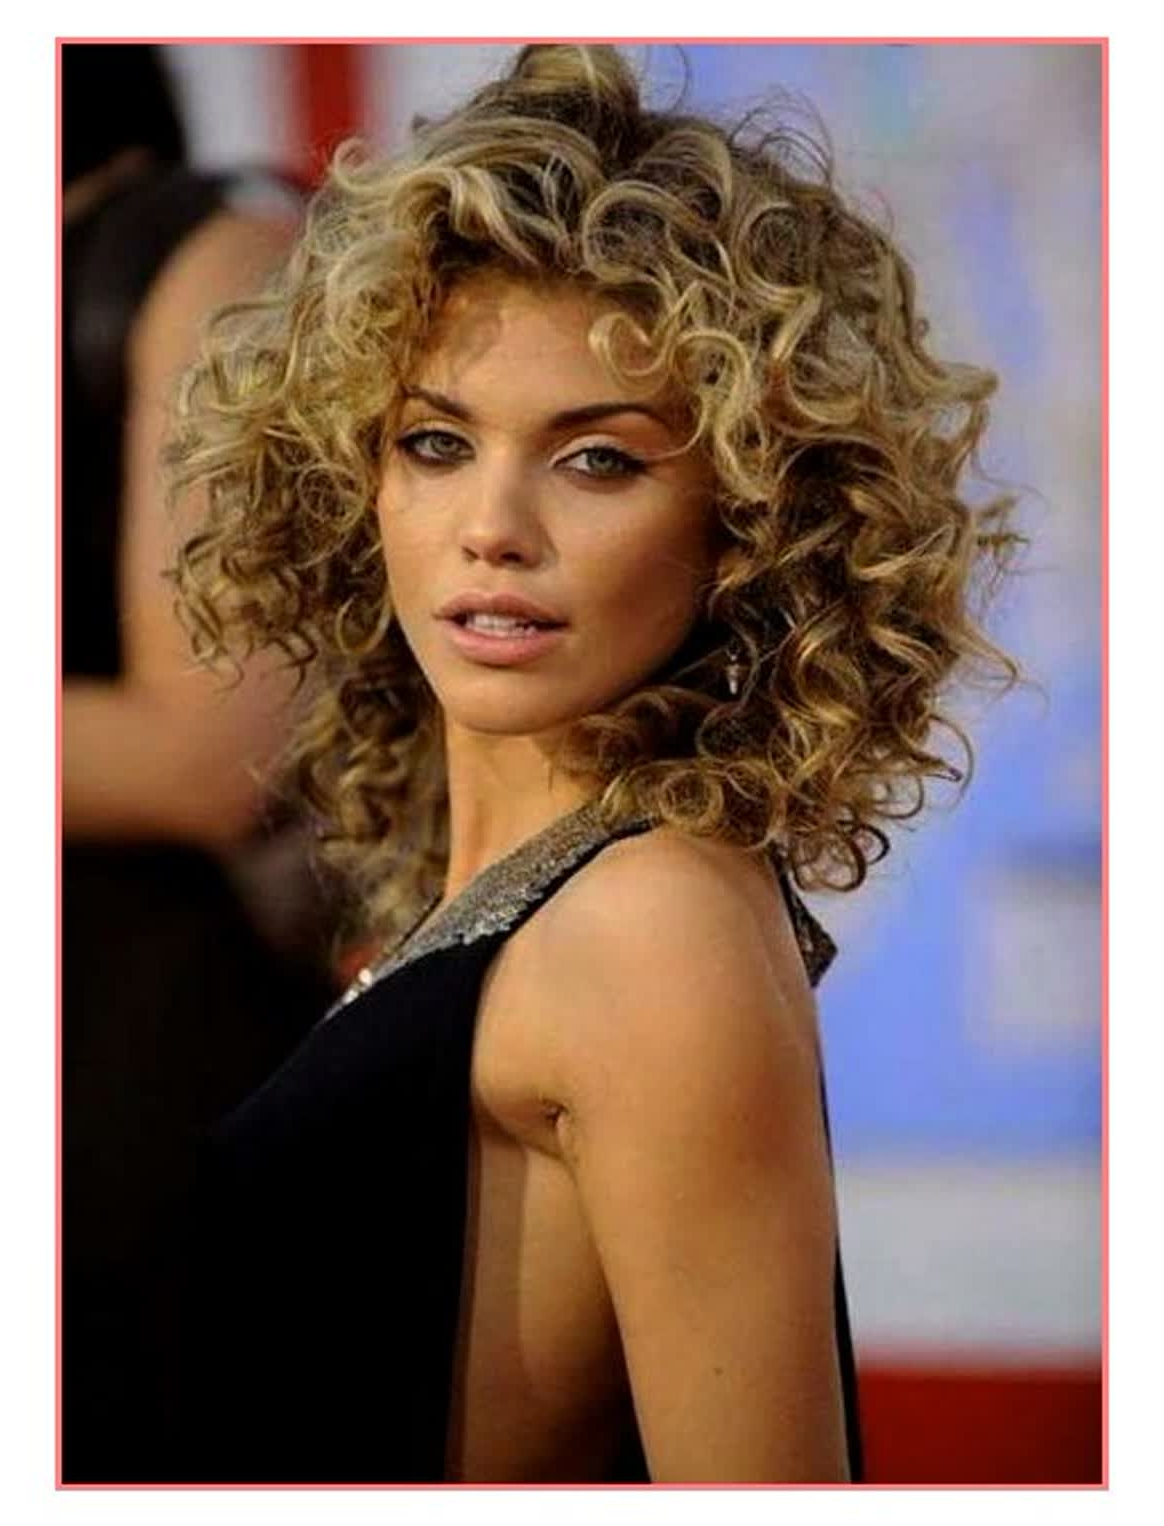 2018 Curly Short Haircuts – Short And Cuts Hairstyles With Regard To Curly Hair Short Hairstyles (View 7 of 25)